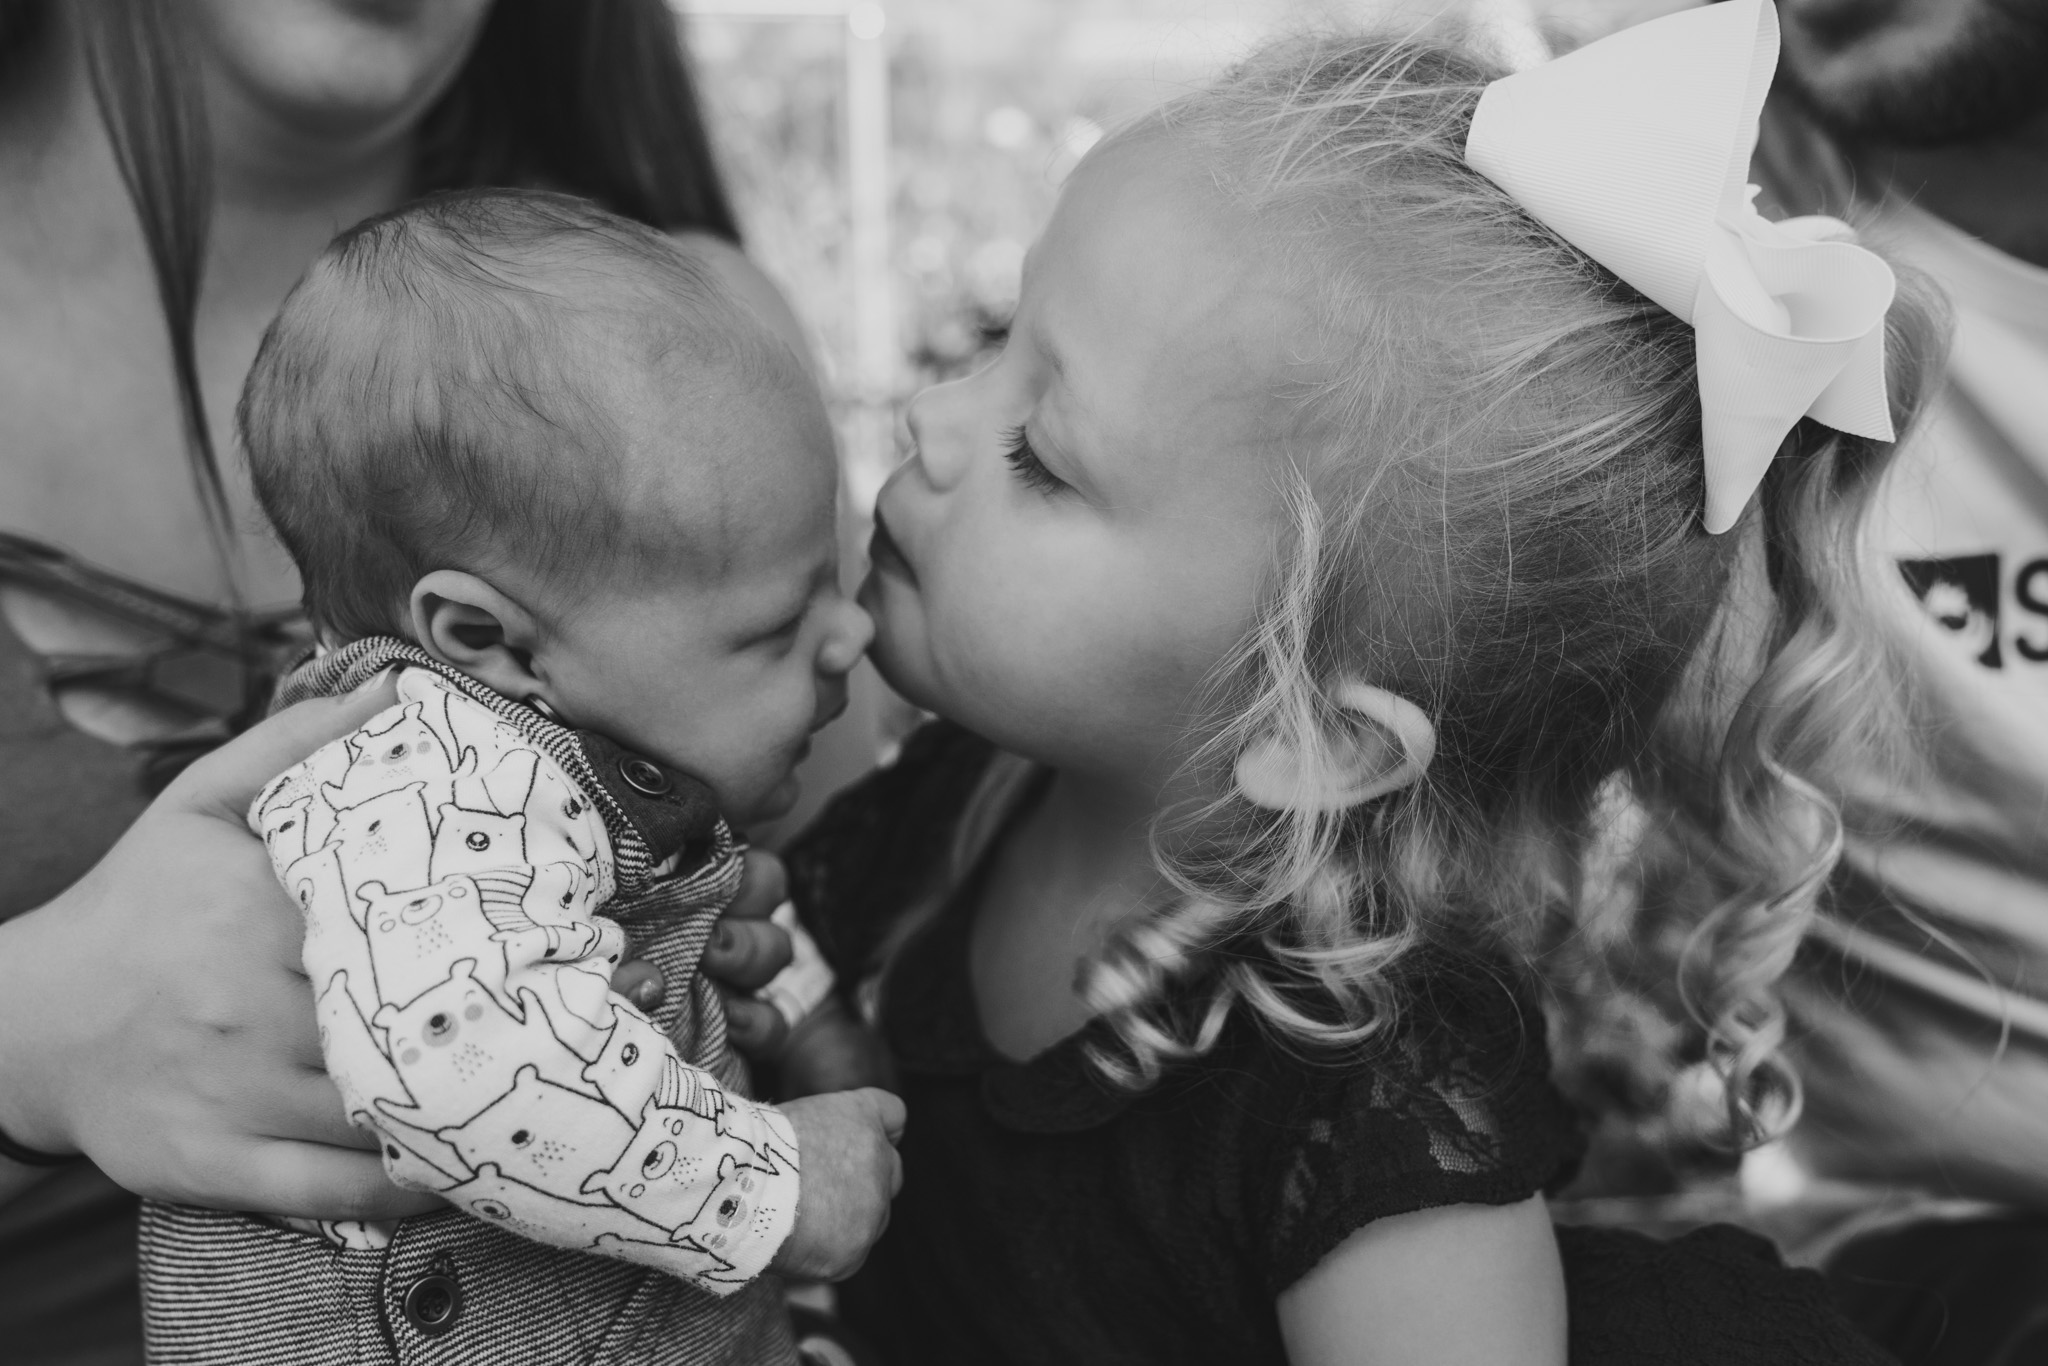 Three month old newborn baby and toddler sister kissing him on forehead at a family session